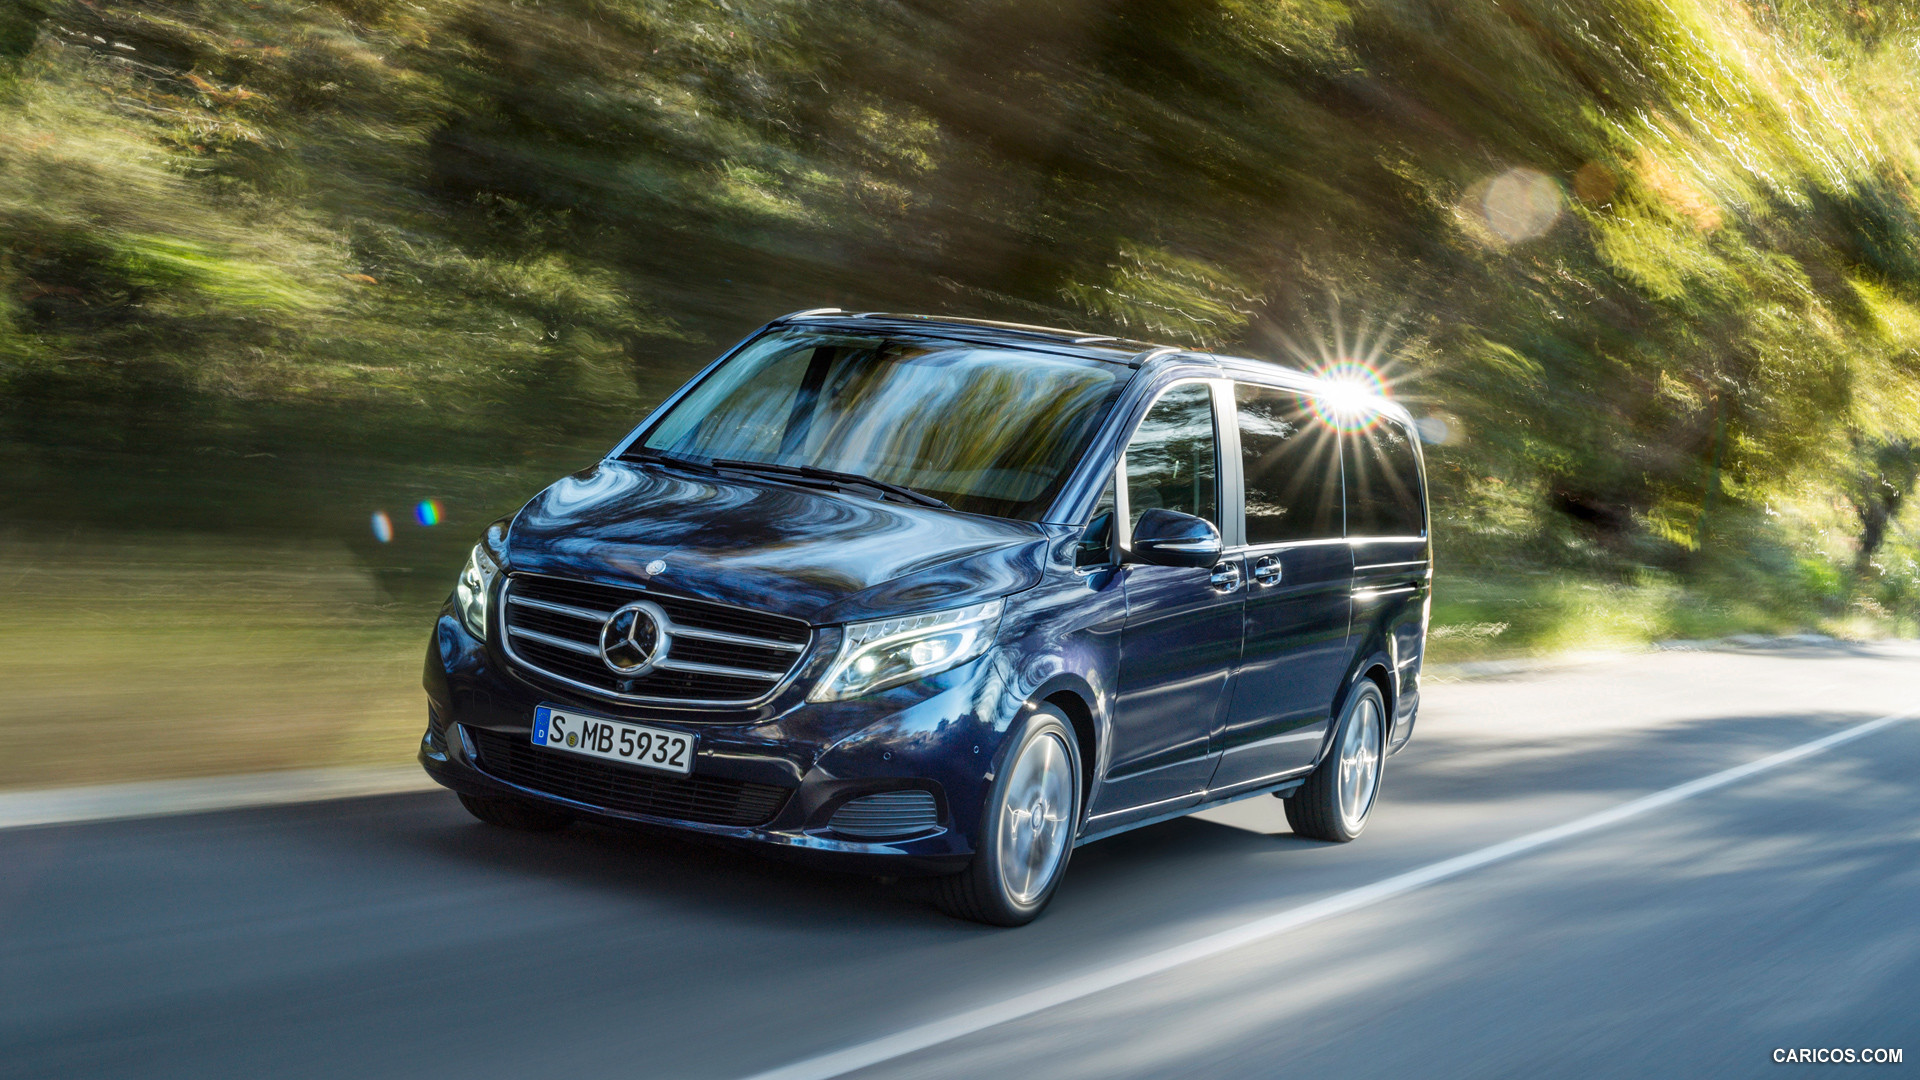 Lewis Reed To Unveil New Mercedes At The 2015 Mobility Roadshow